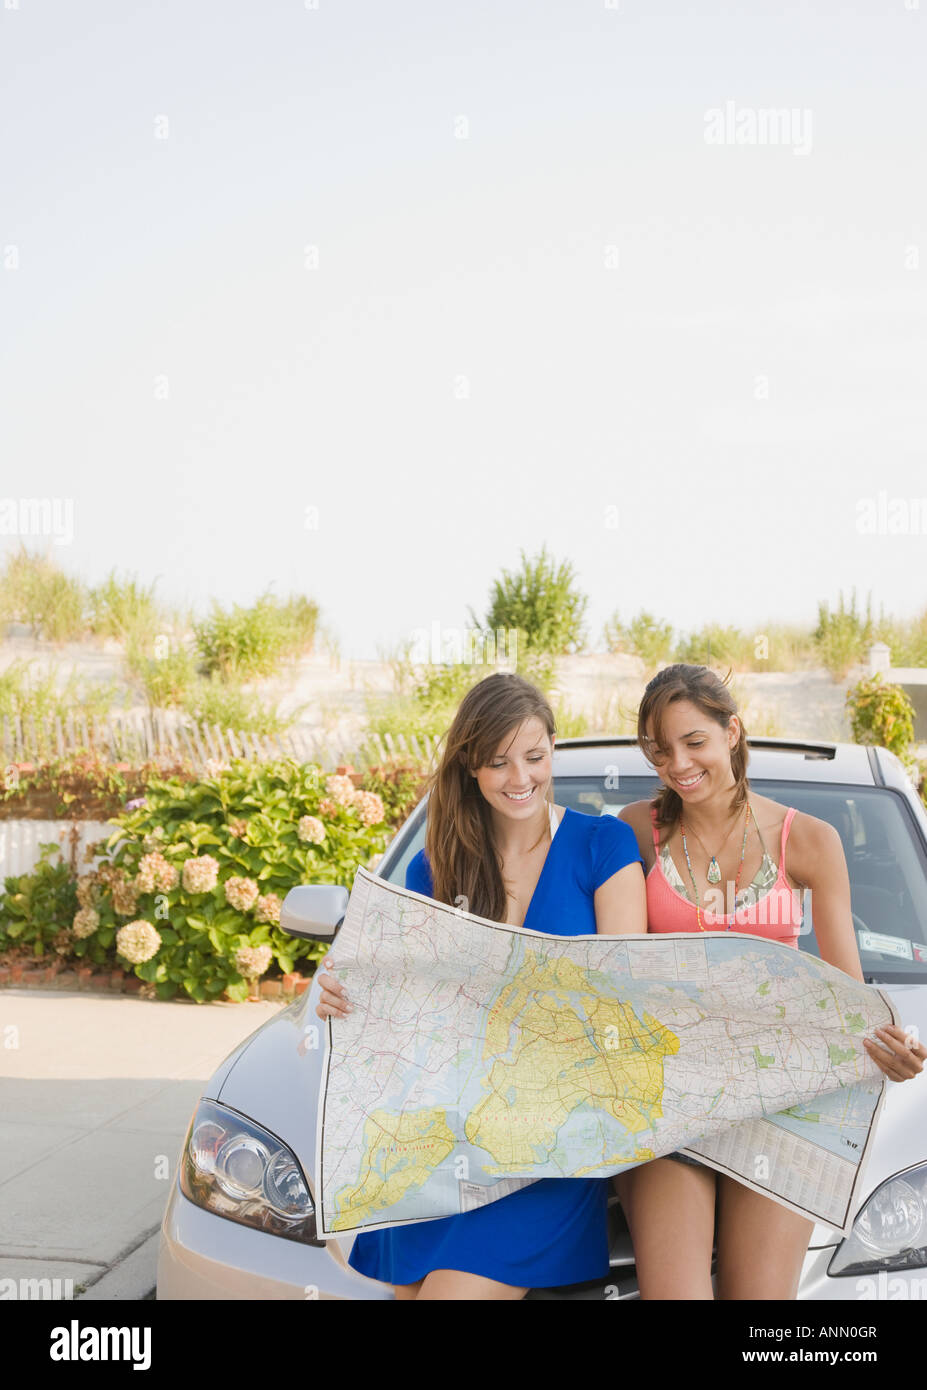 Young women looking at map - Stock Image